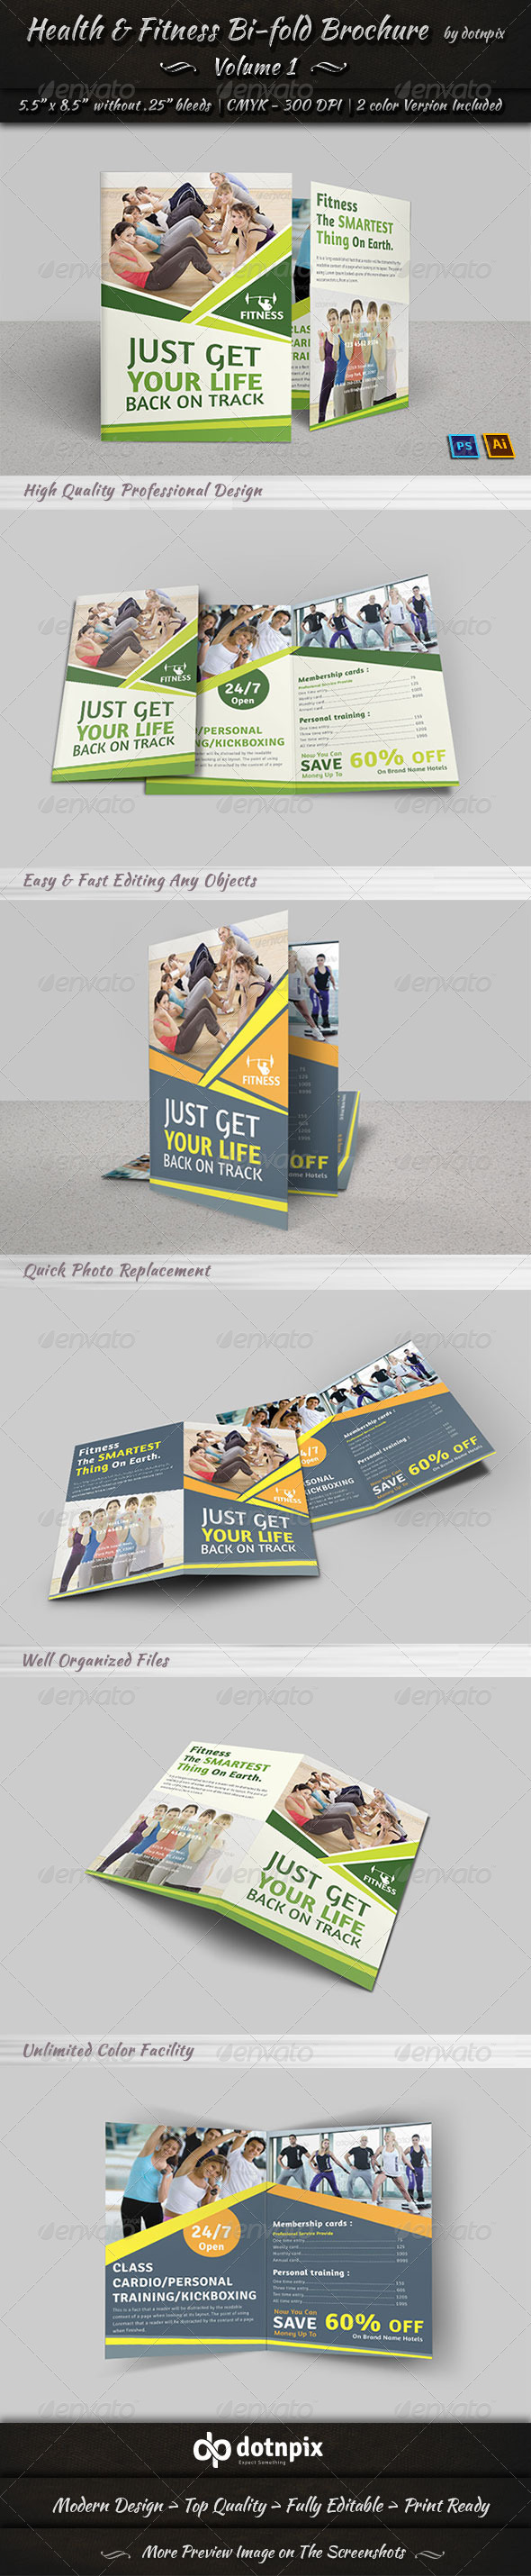 Health & Fitness Bi-Fold Brochure Volume 1